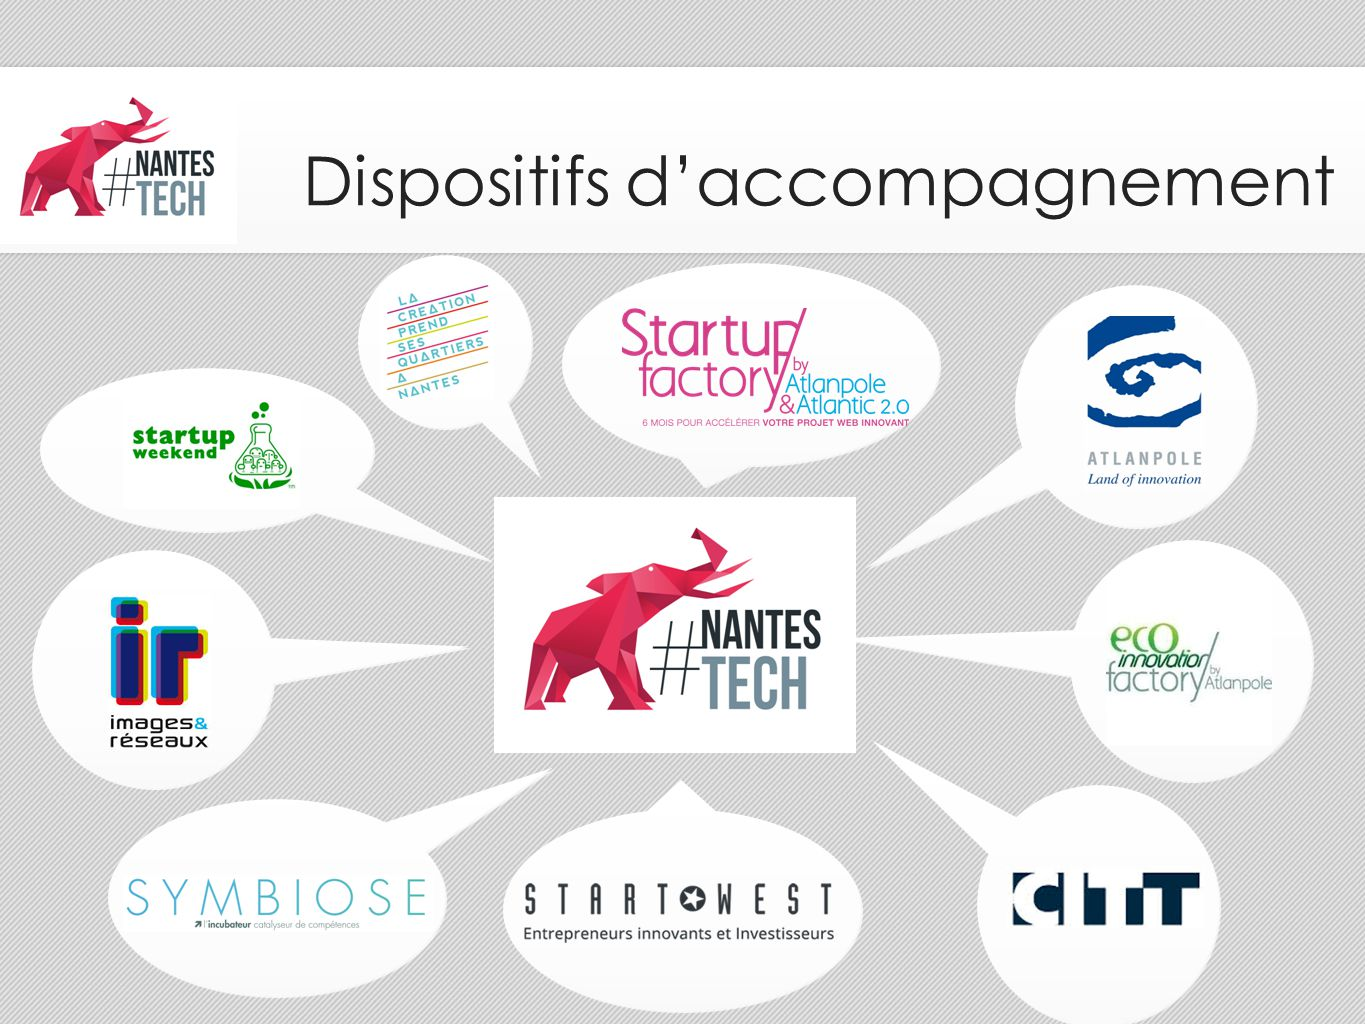 Dispositifs d'accompagnement